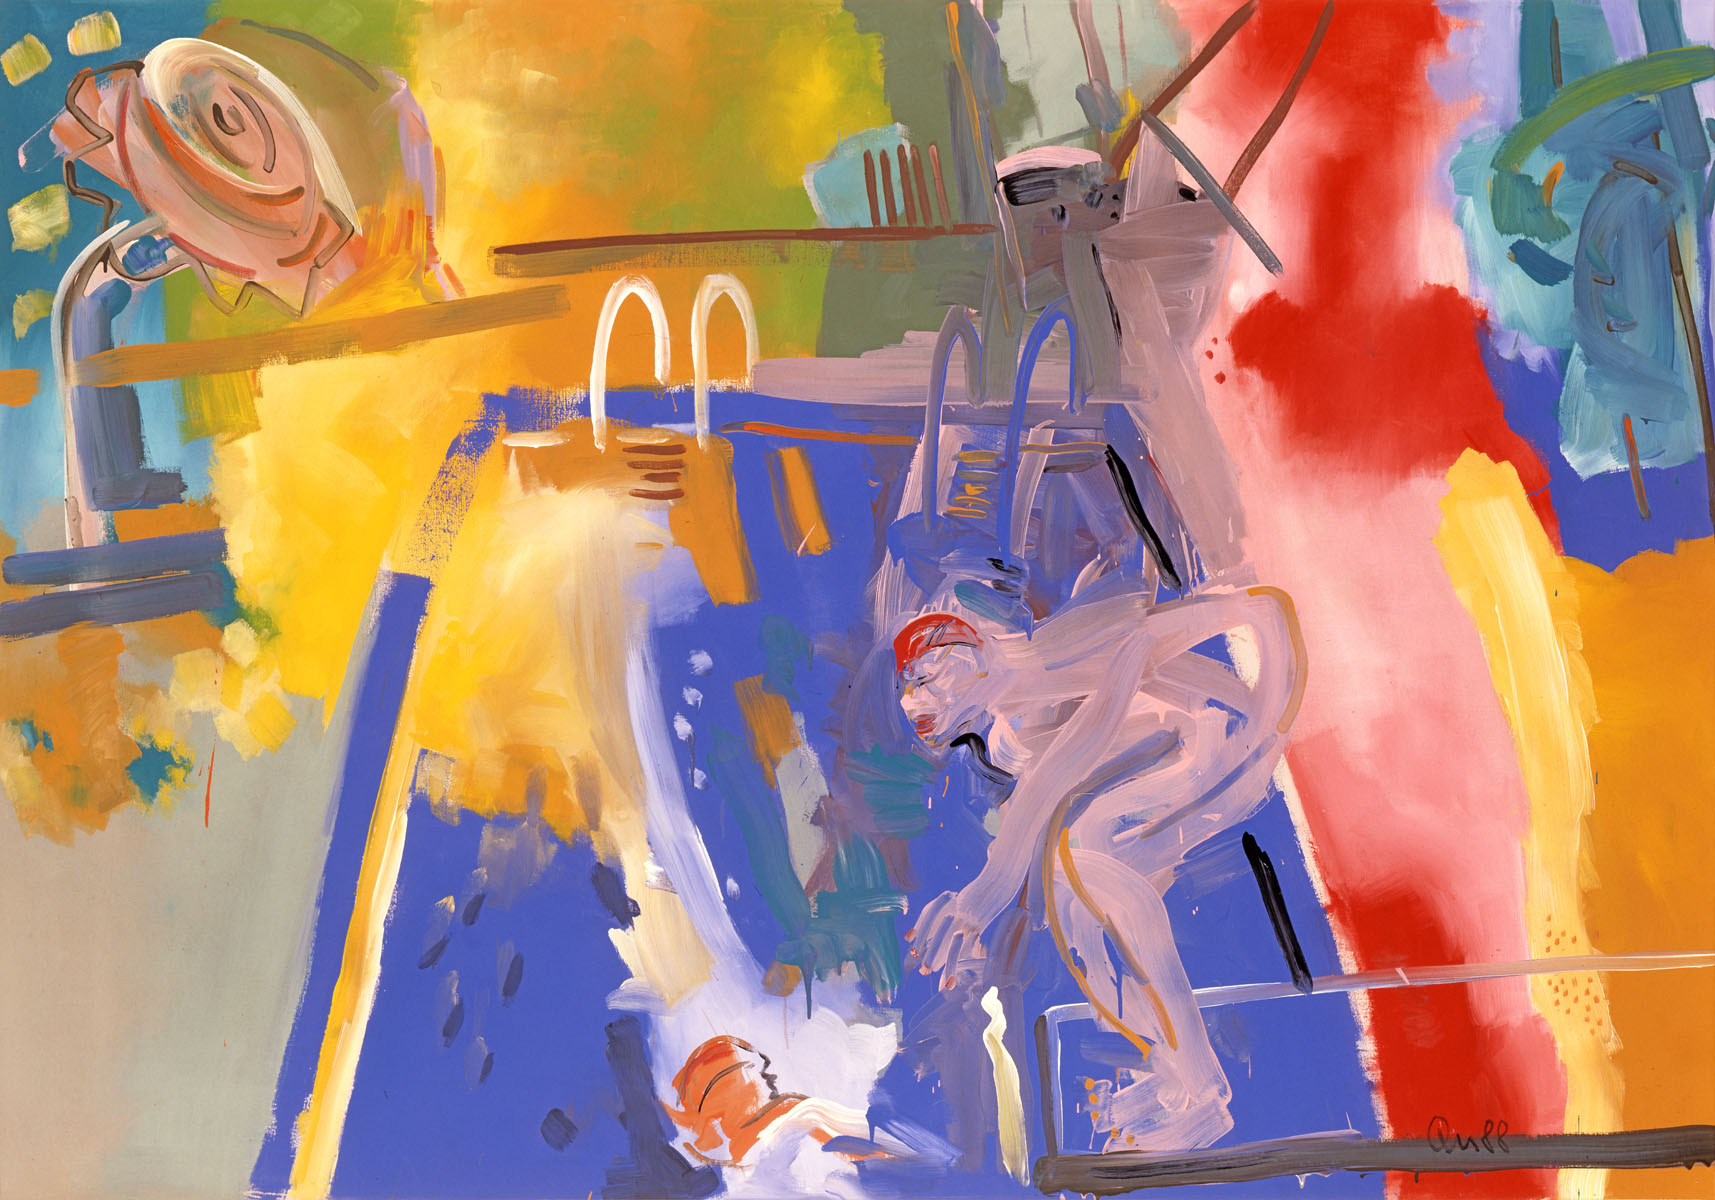 1988-44_heaven-up-and-pool-down_1988_acryl-leinwand_144x206cm